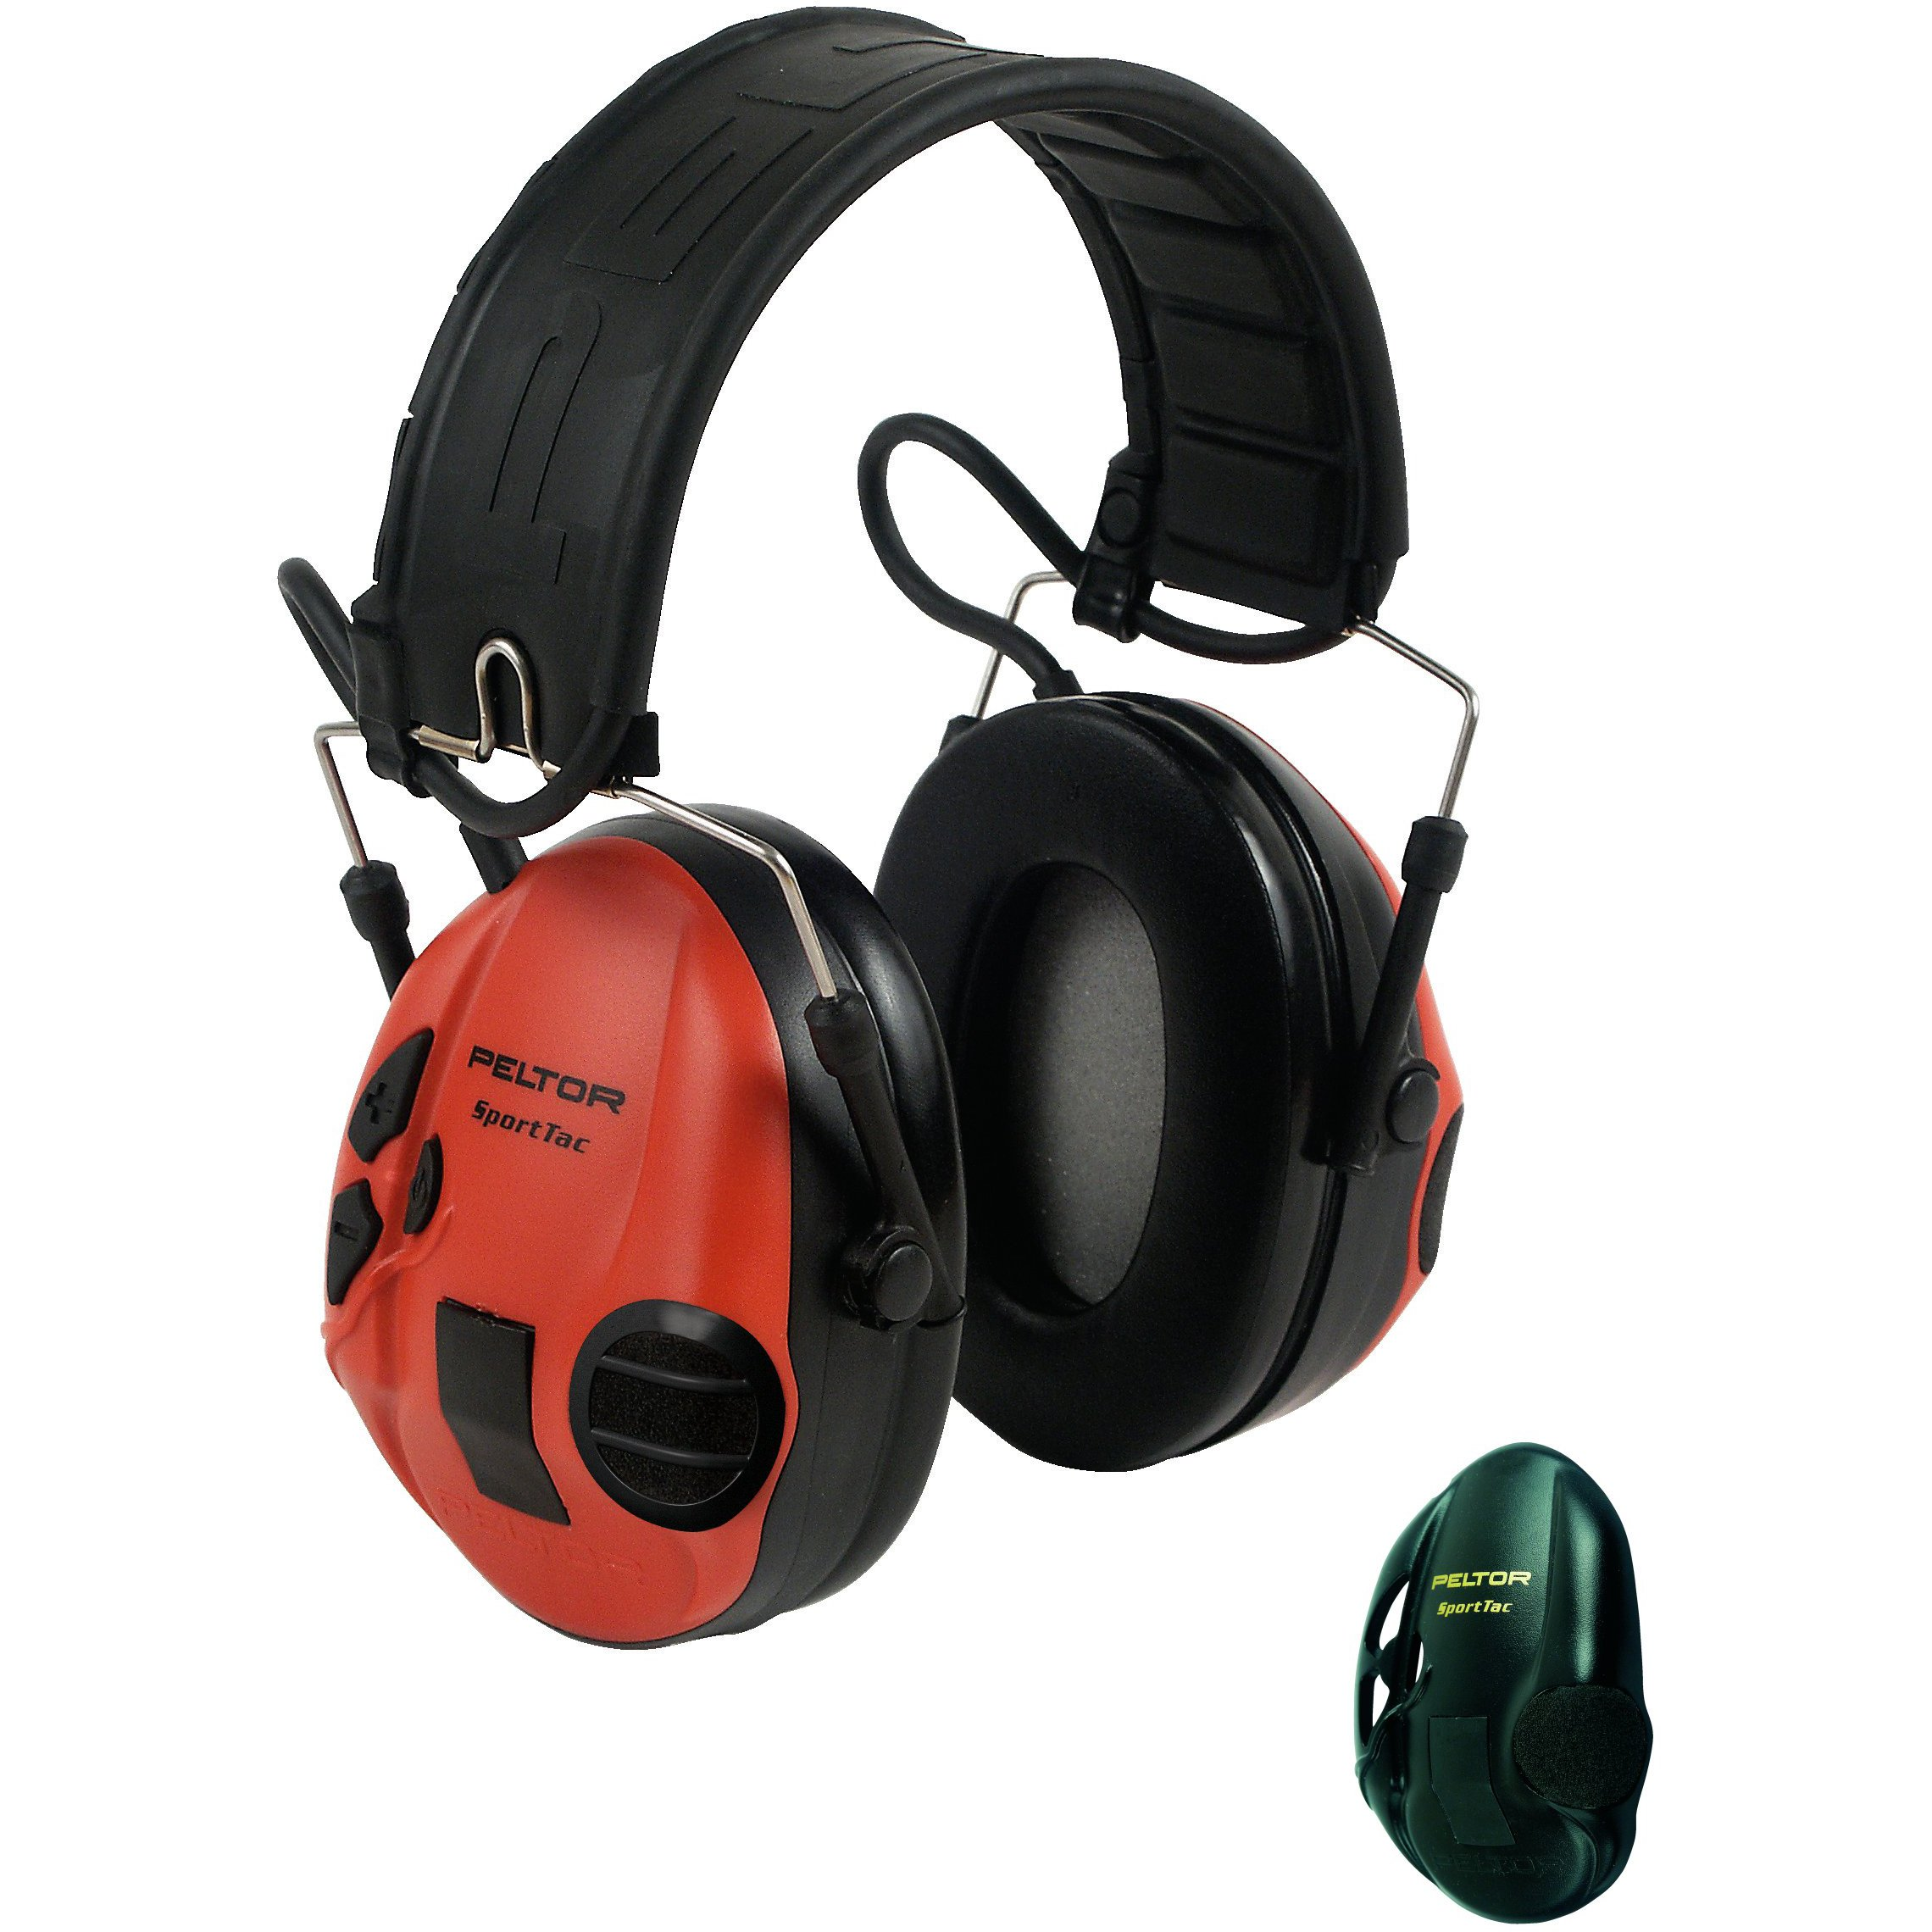 3M Peltor SportTac Electronic Shooting Hunting Eardefender with Red and Black Interchangeable Earshells